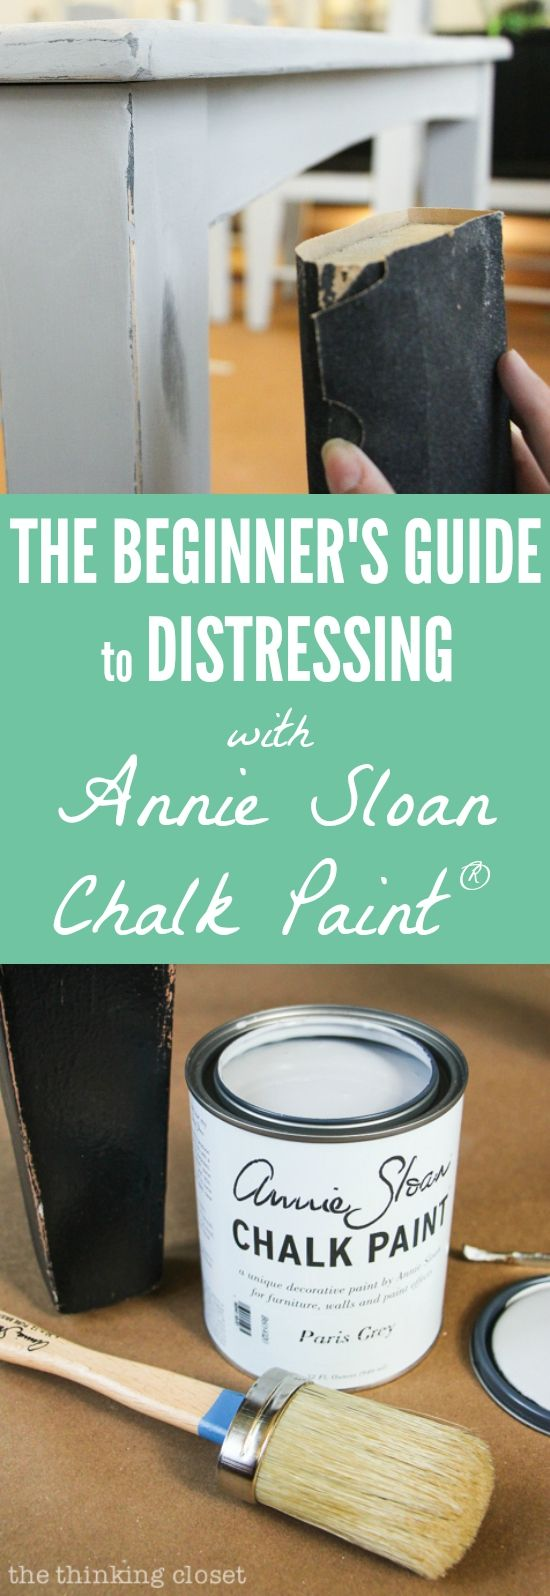 The Beginner's Guide to Distressing with Annie Sloan | It turns out that distressing with Chalk Paint® Decorative Paint by Annie Sloan doesn't have to be stressful at all! Here's a detailed tutorial for how to age and distress a piece of furniture to give it that time-worn look, rich with character. This guide is your one stop shop for inspiration; so what are you waiting for? This paint is SO easy to work with.